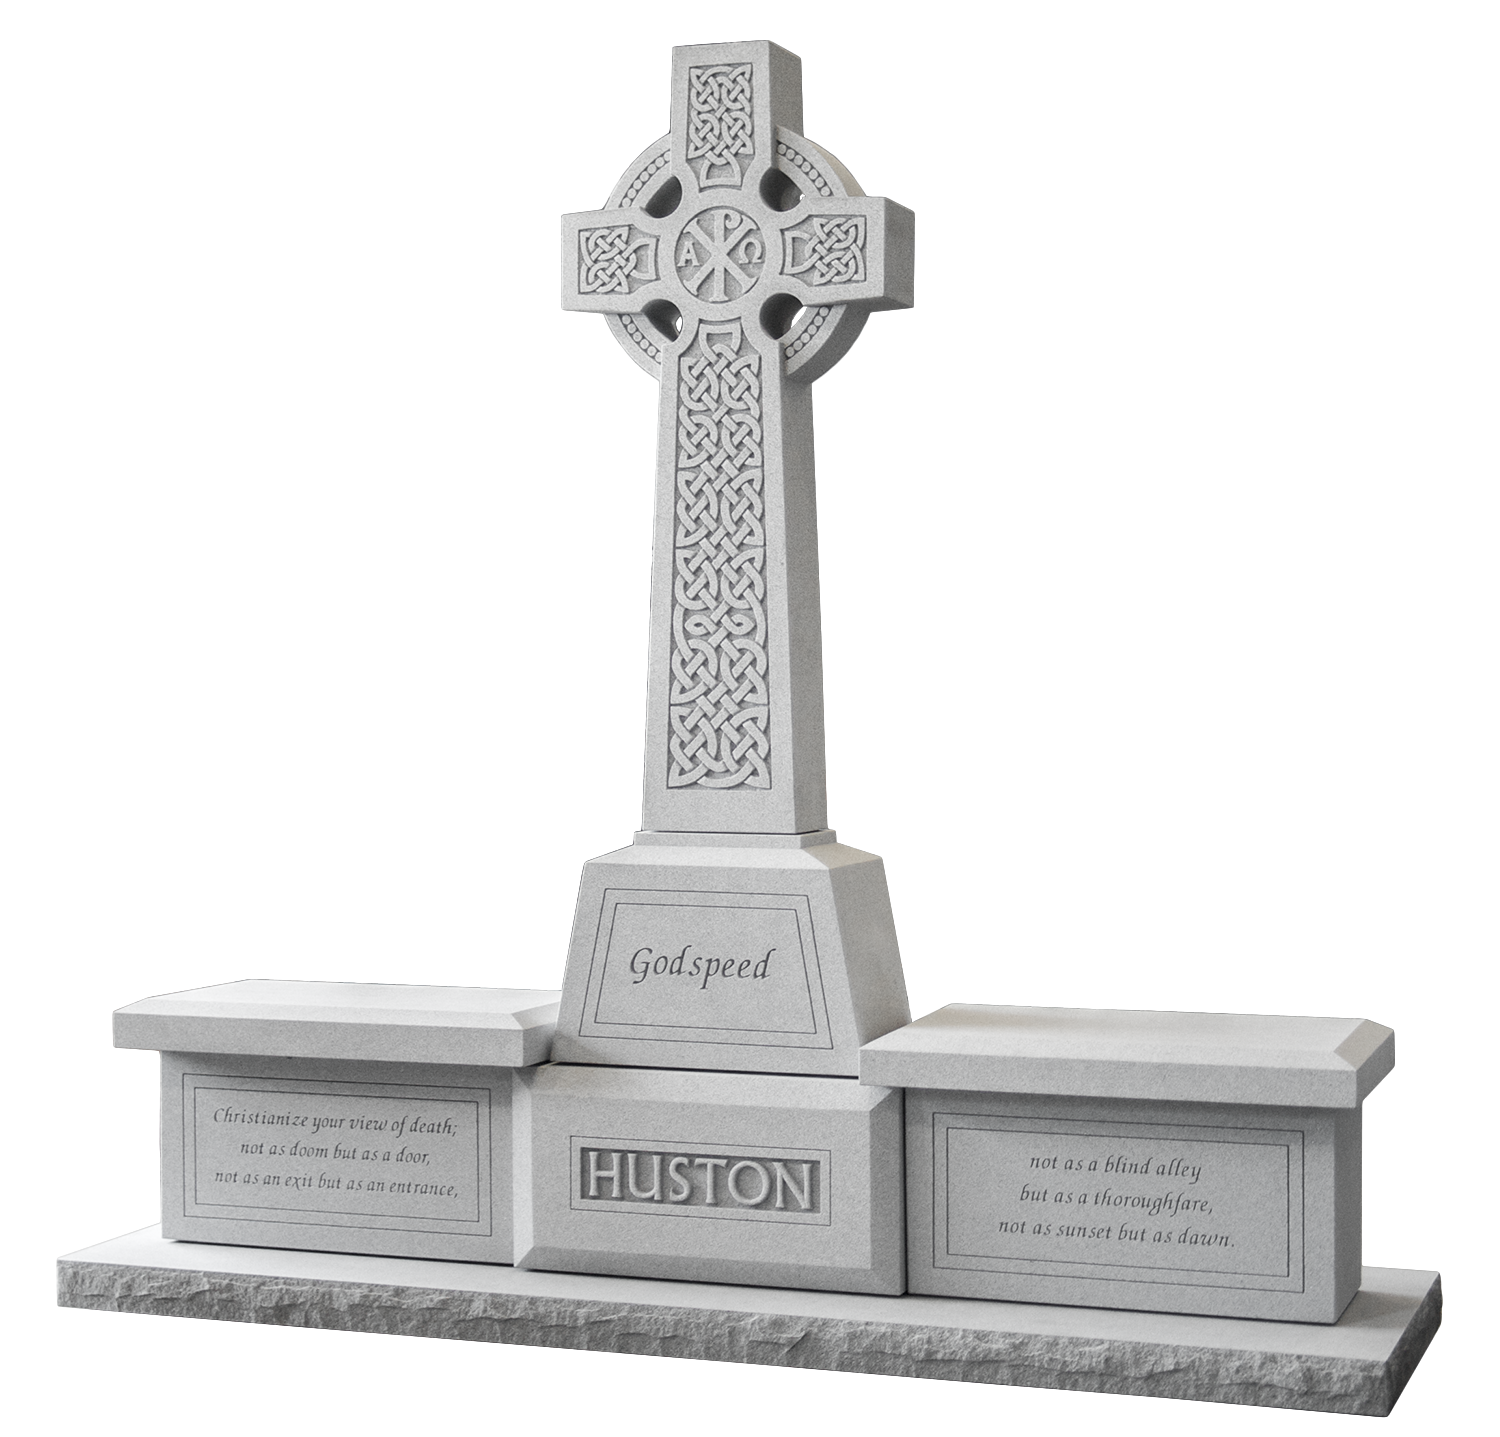 Huston - Monument.png